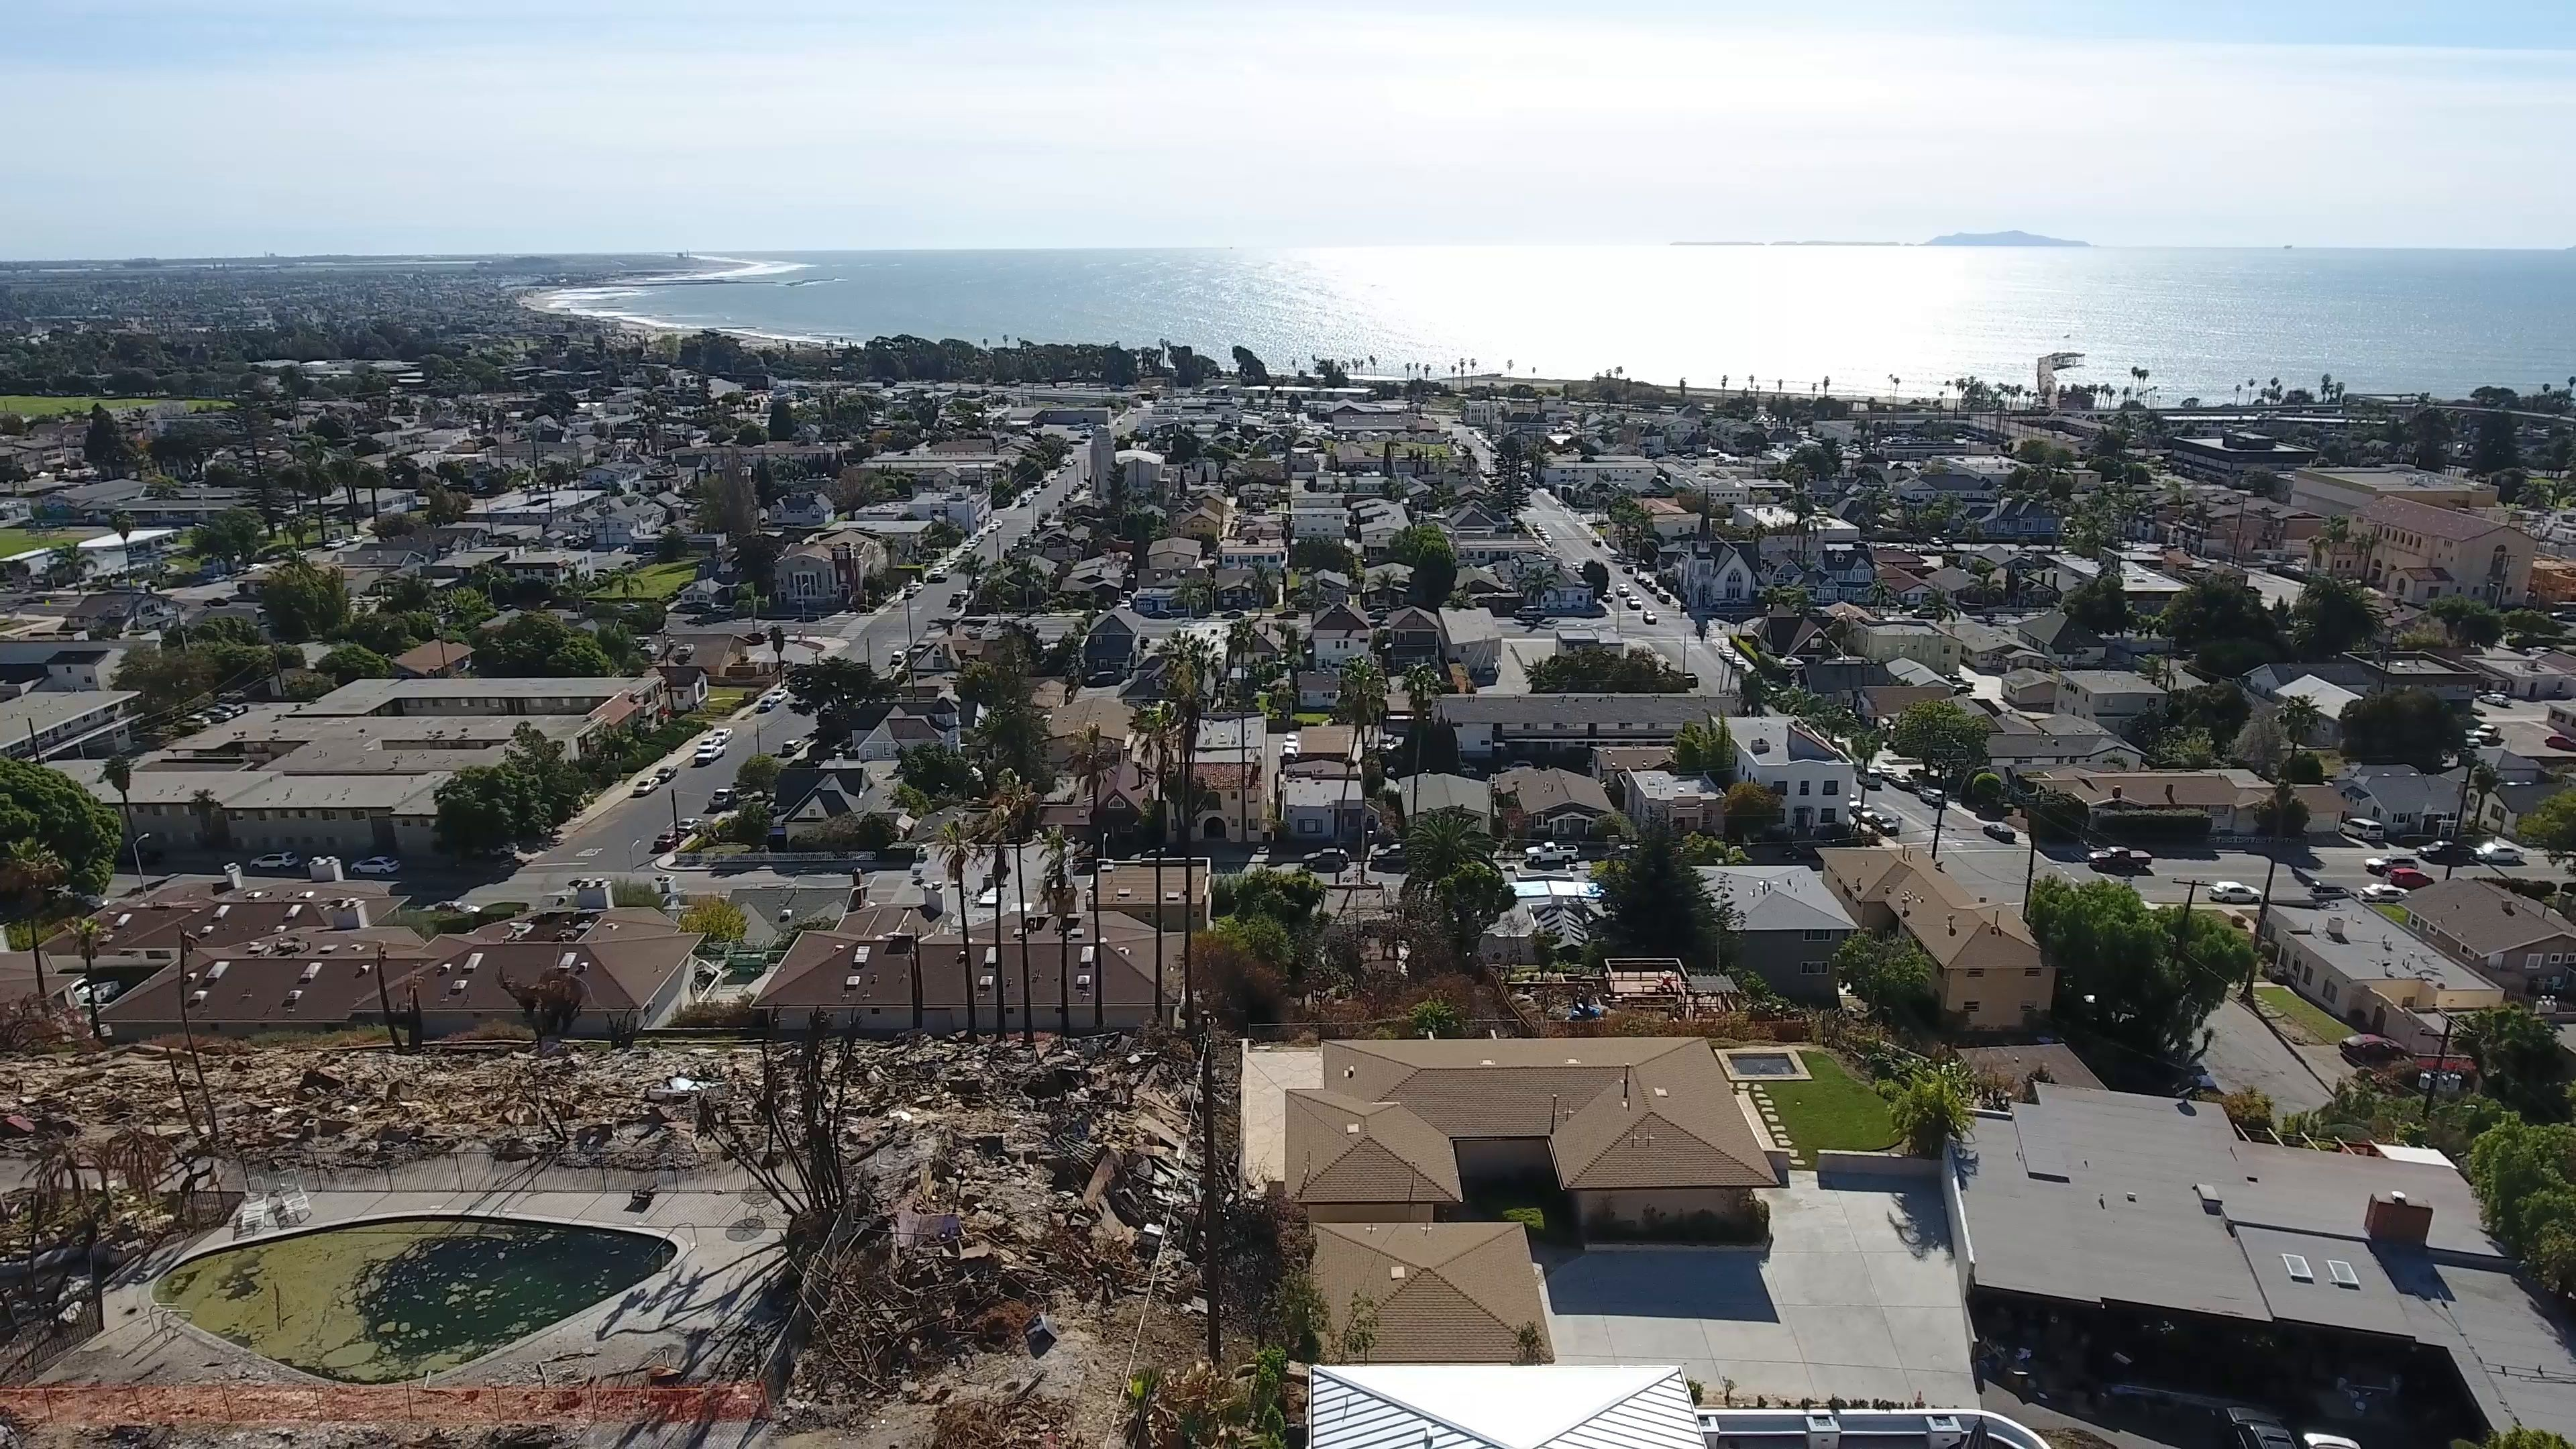 Burned Apartment After Thomas Fire In Ventura Ca Stock Footage Thomas Fire Burned Apartment Thomas Fire Stock Footage